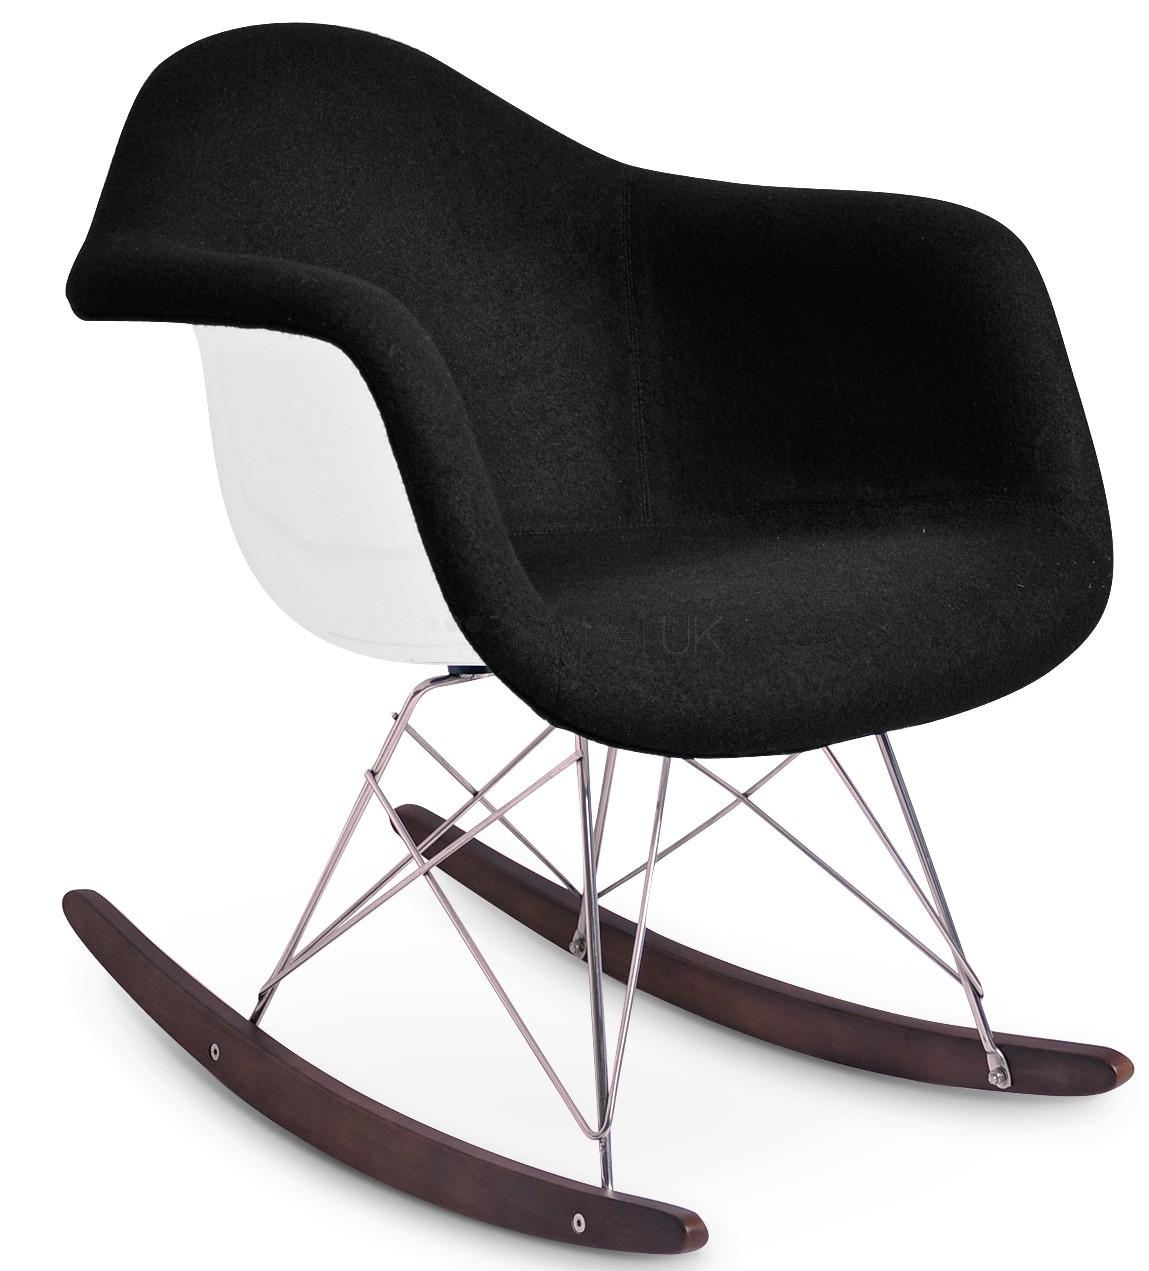 Furniture: Upholstered Rocking Chair | Armchair Rocking Chair Intended For Sofa Rocking Chairs (Image 5 of 20)